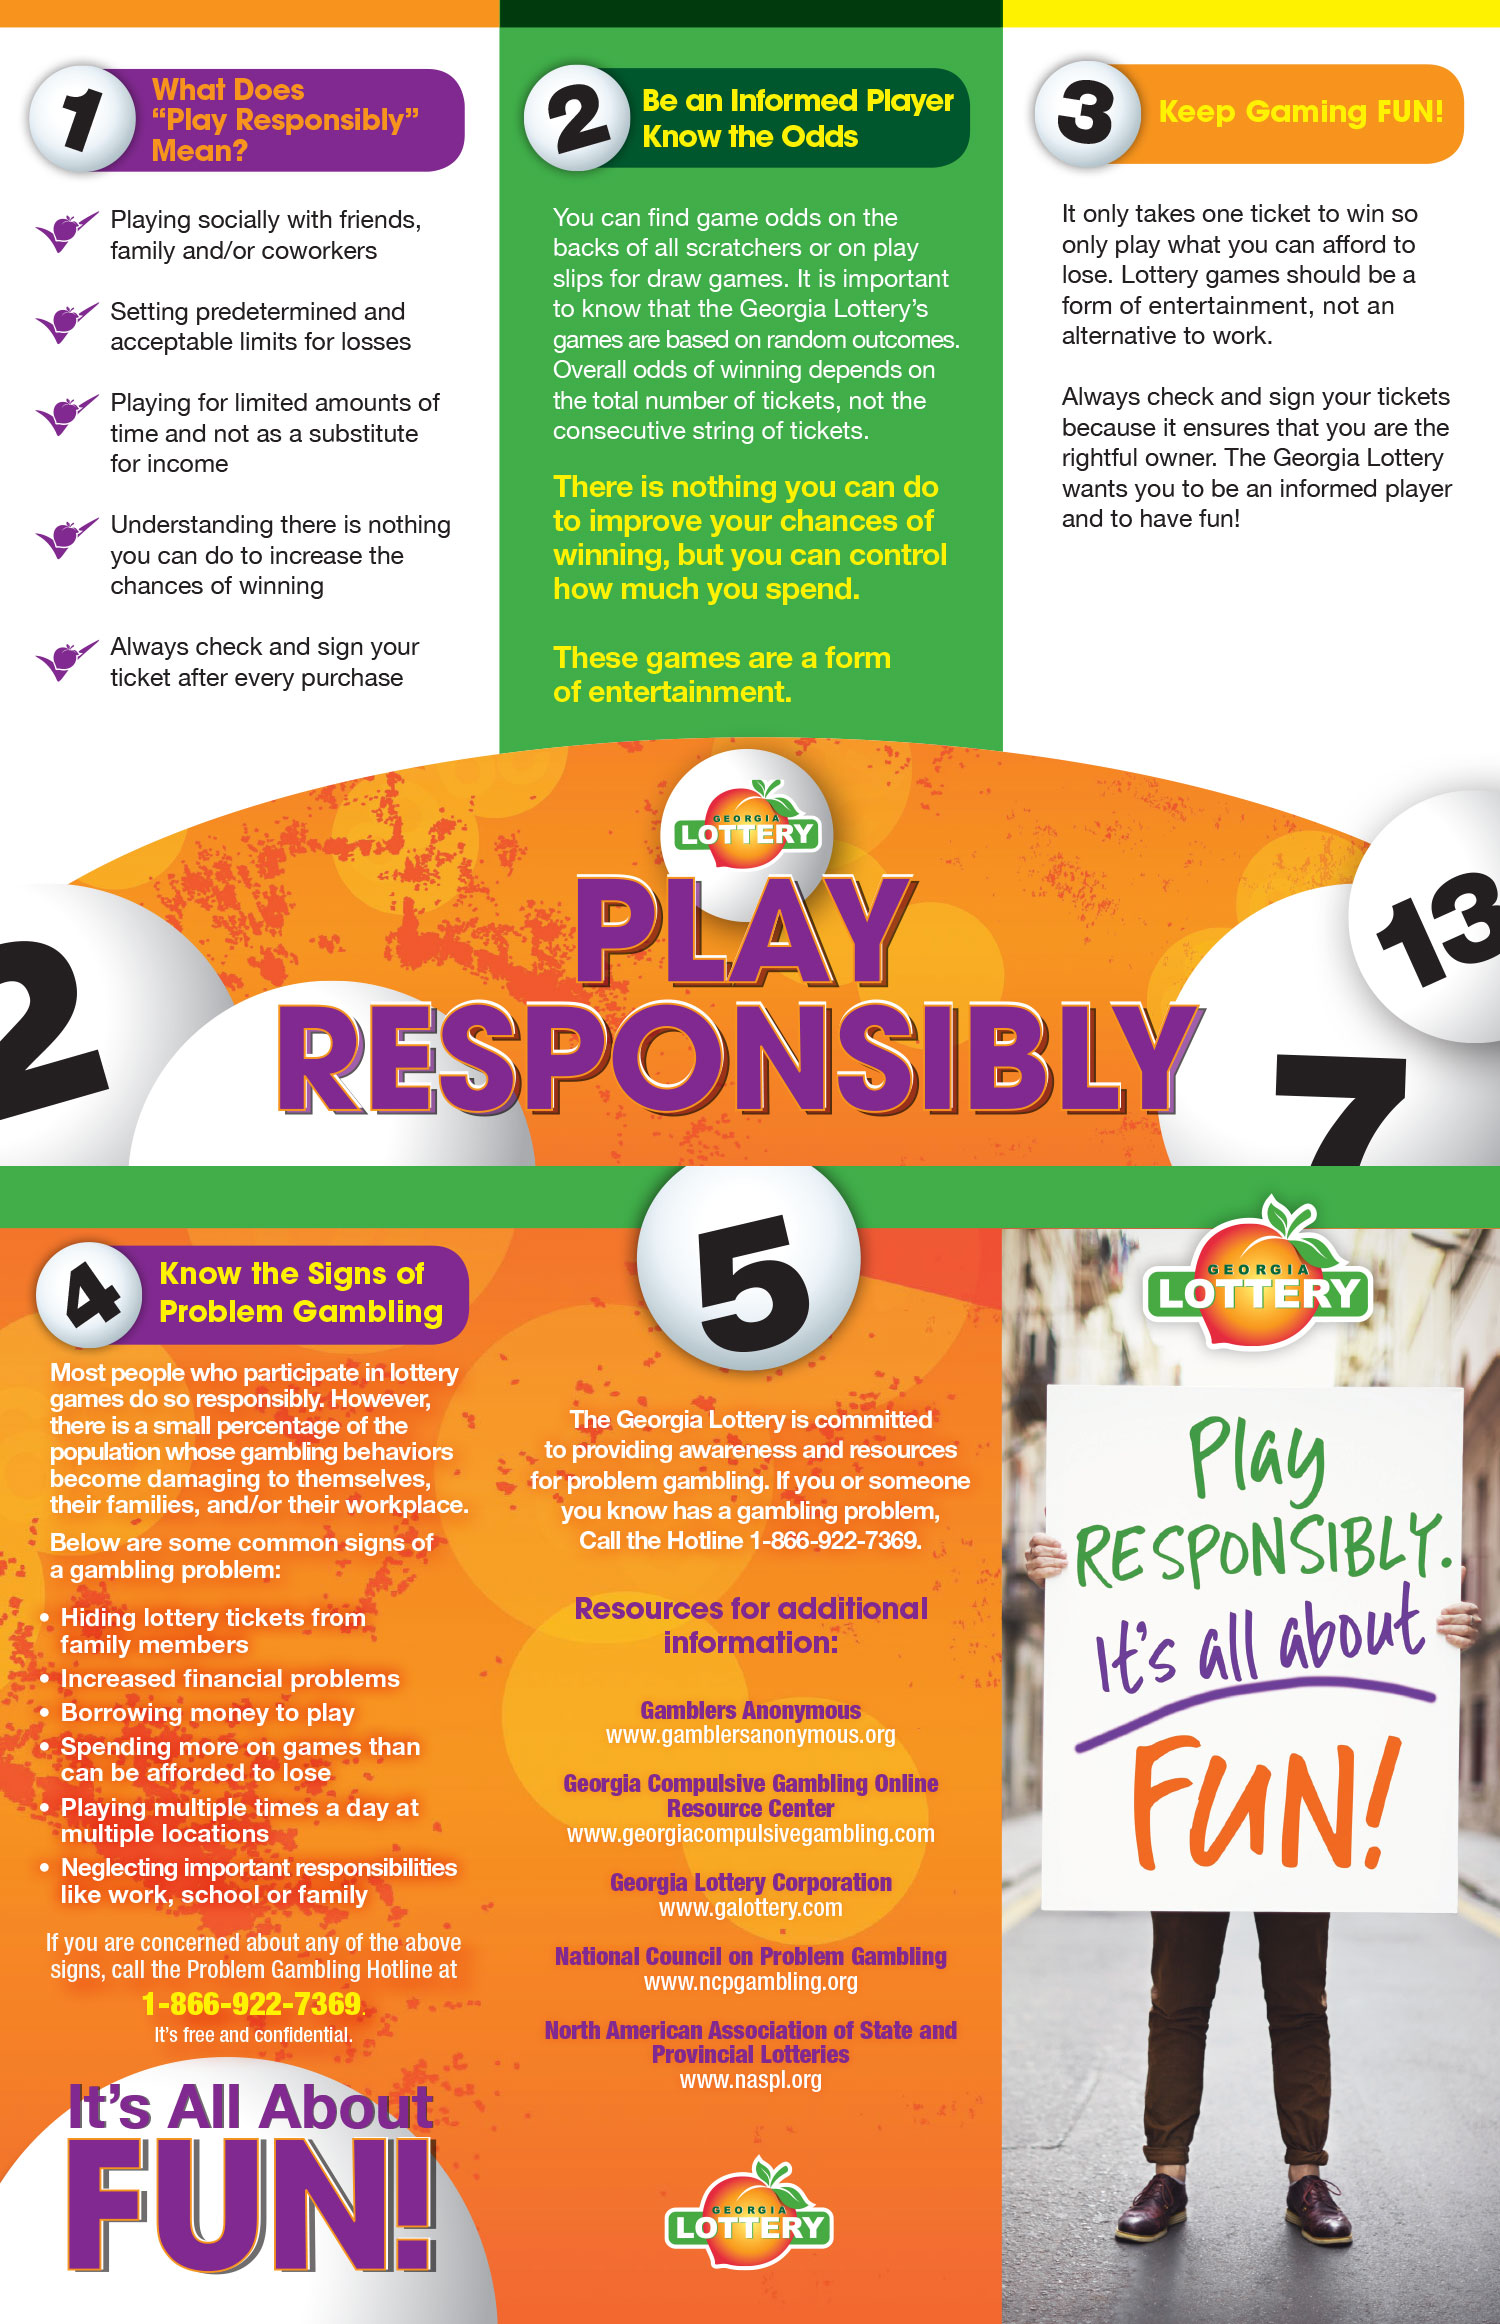 Georgia Lottery Corporation Play Responsibly Brochure